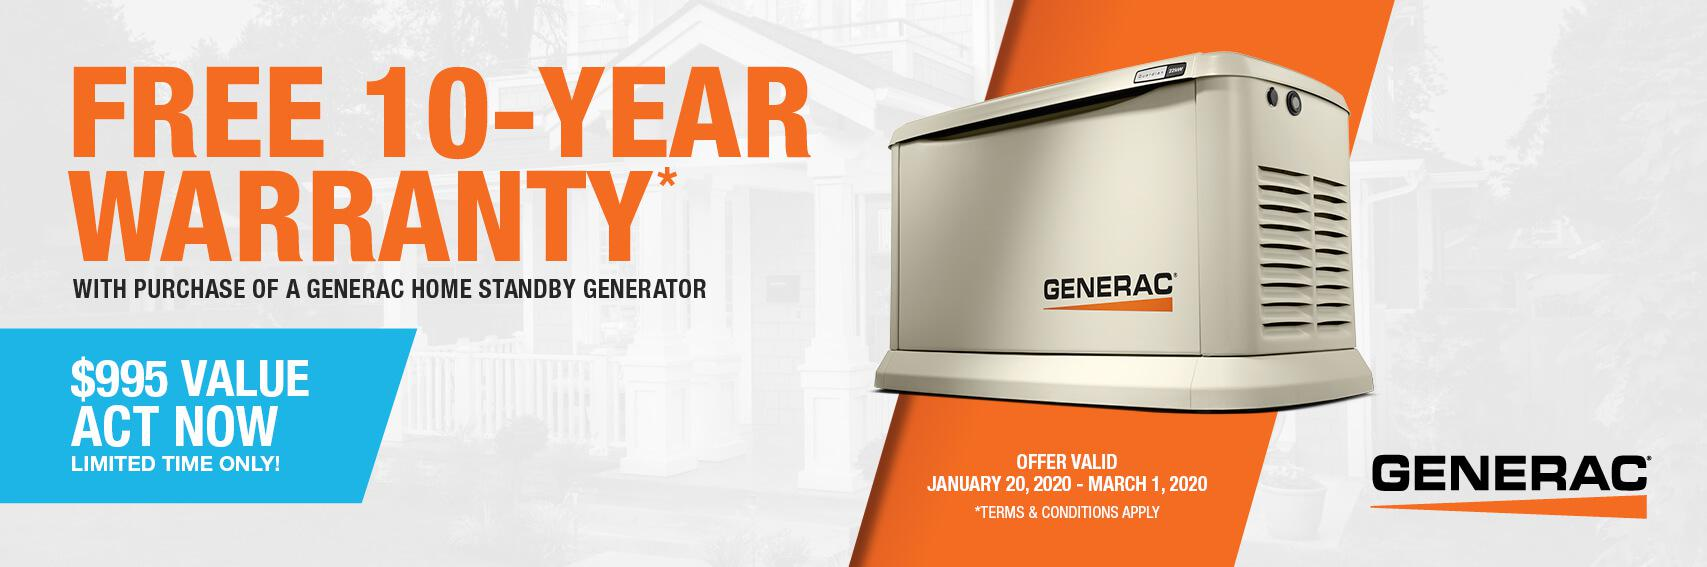 Homestandby Generator Deal | Warranty Offer | Generac Dealer | ELKHORN, WI